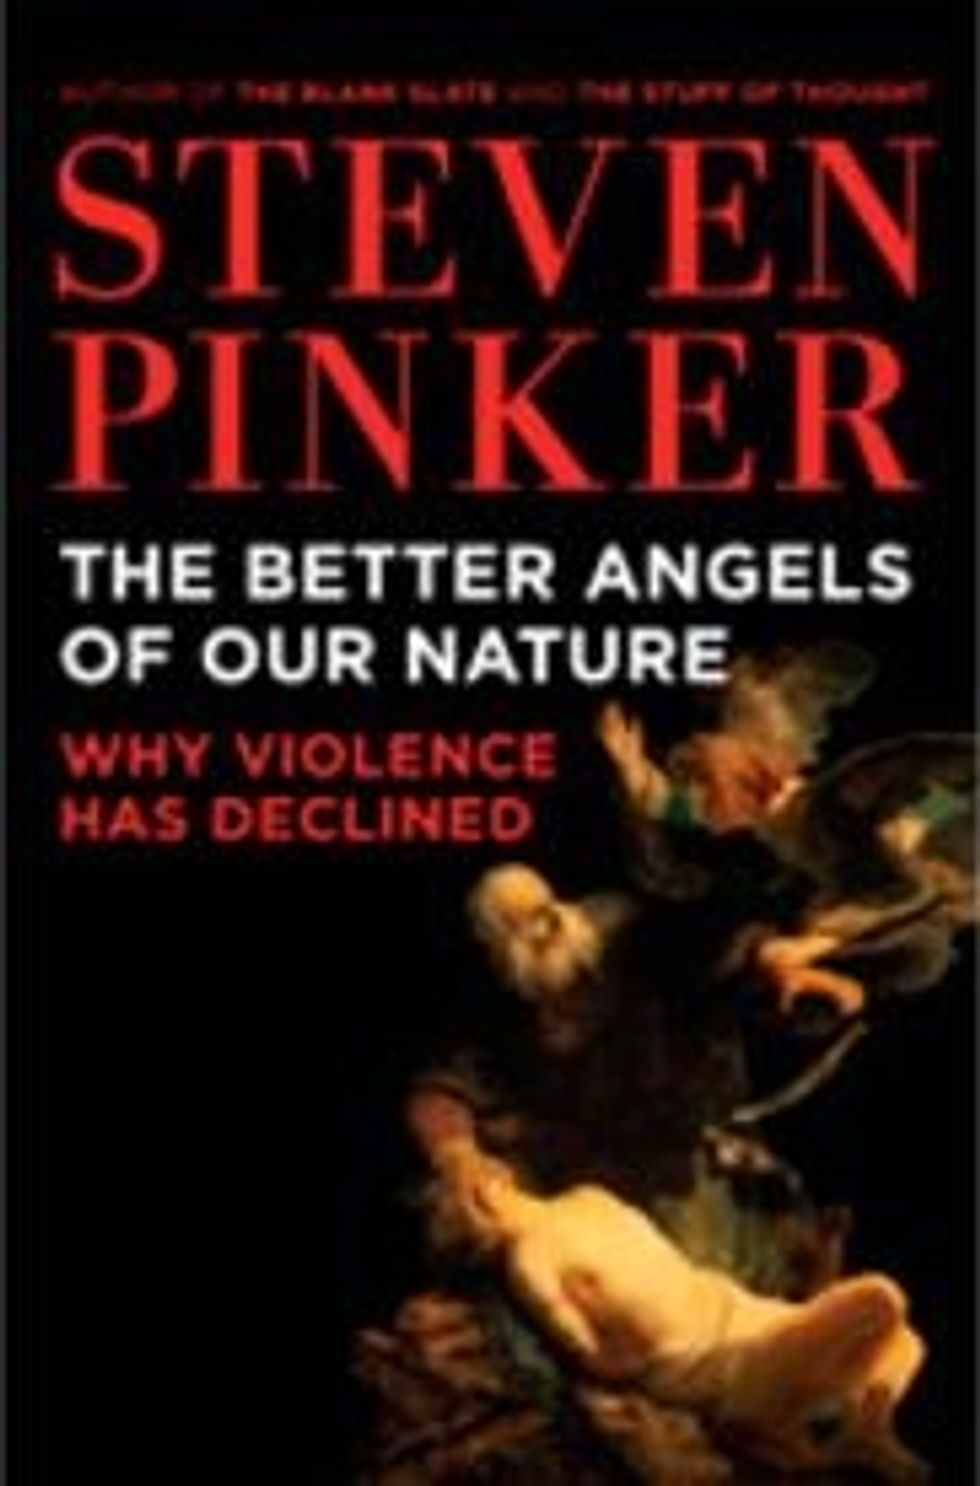 Book Review: The Better Angels of Our Nature